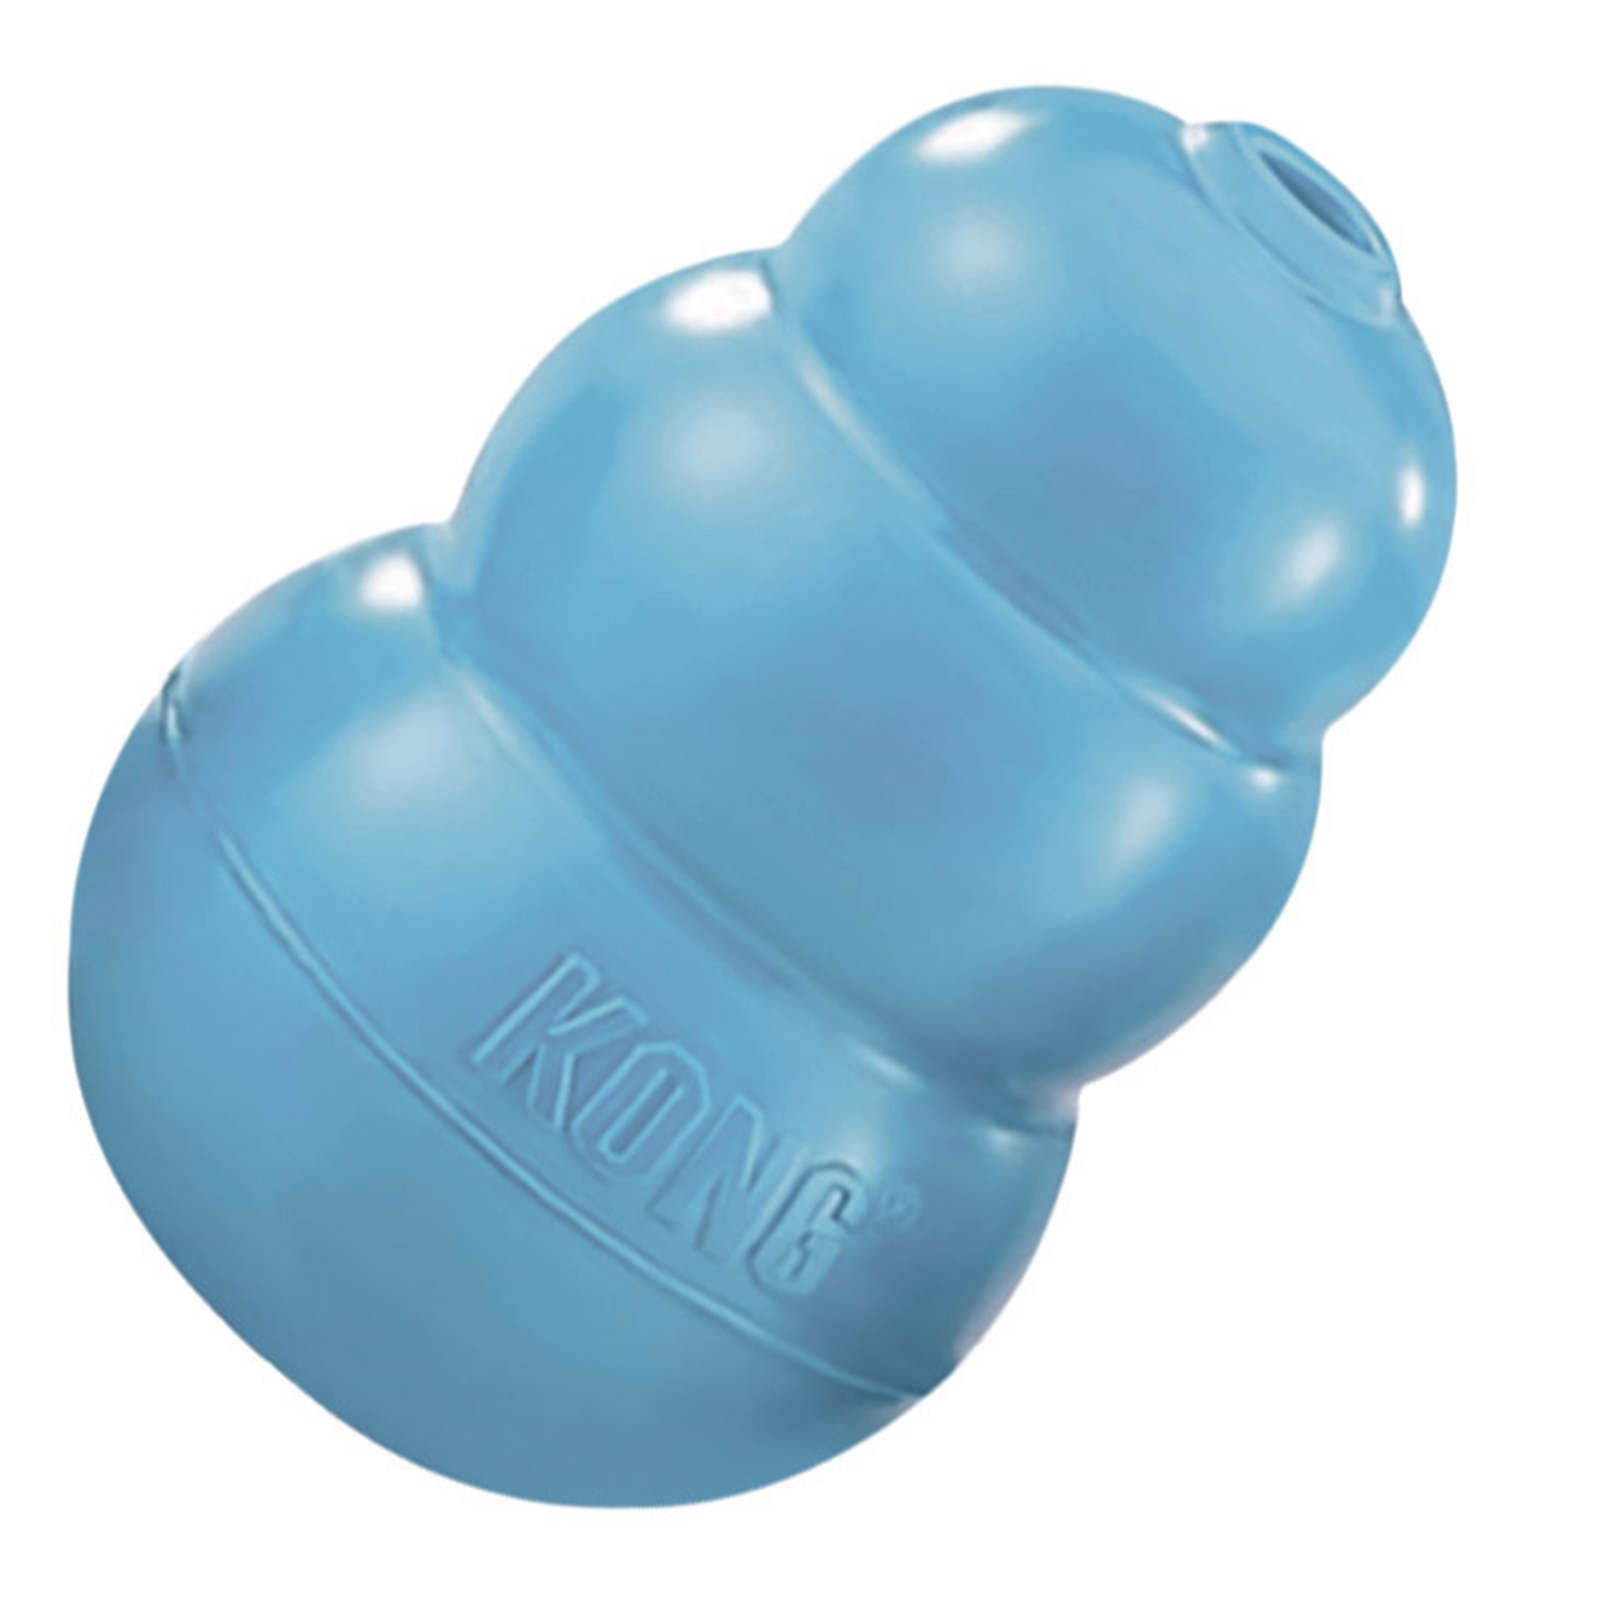 Kong-Classic-Puppy-Treat-amp-Food-Dispensing-Dog-Toy thumbnail 11